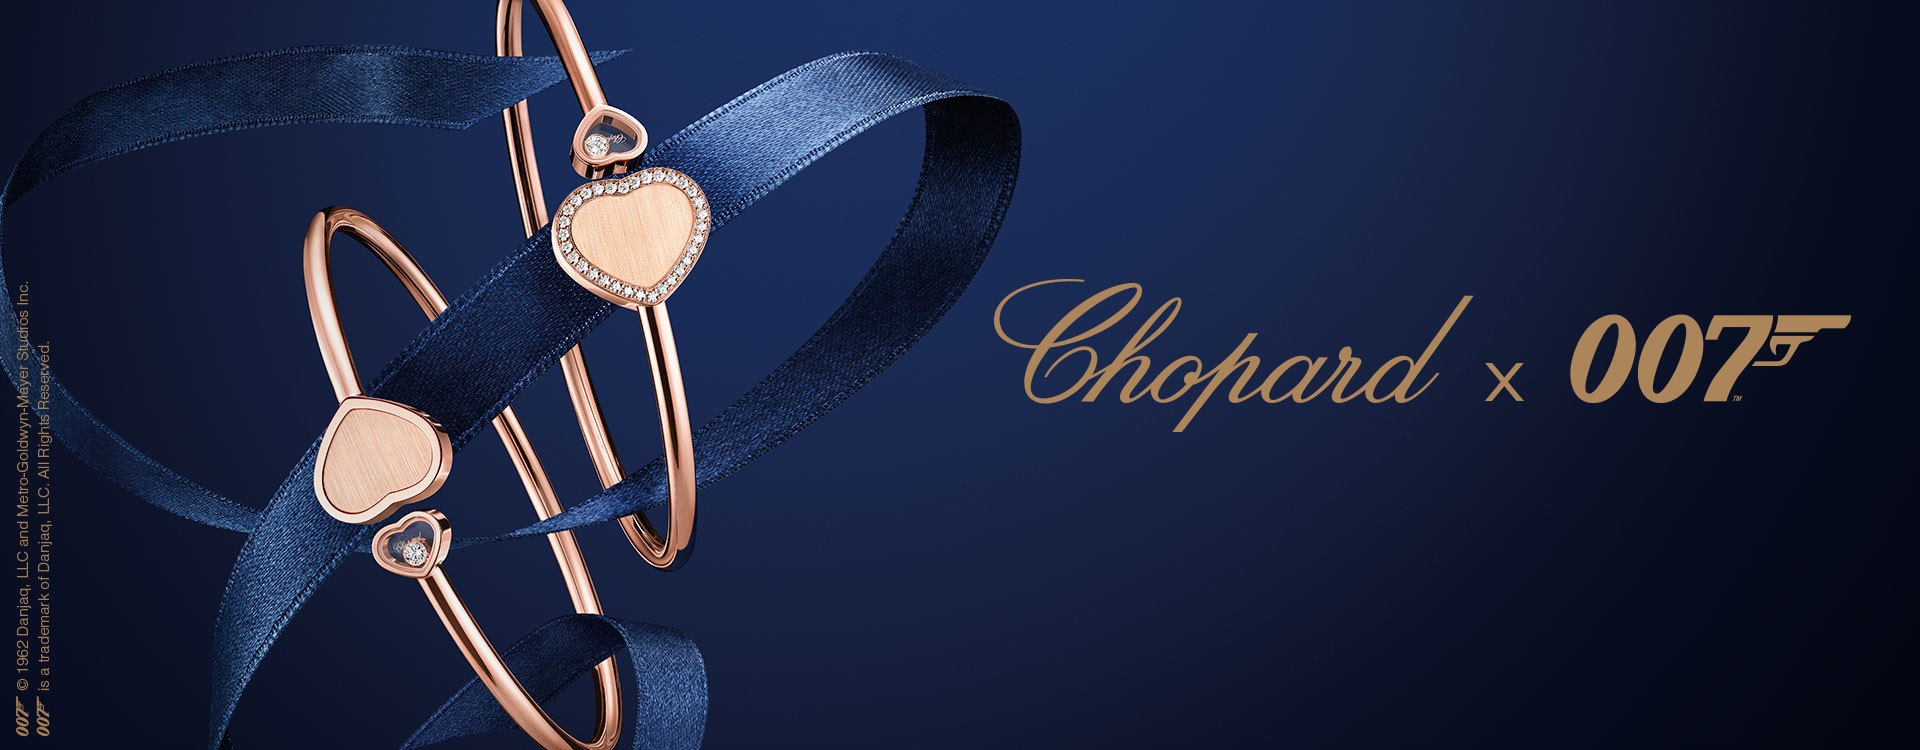 maestro-jewelers-chopard-007-happy-hearts